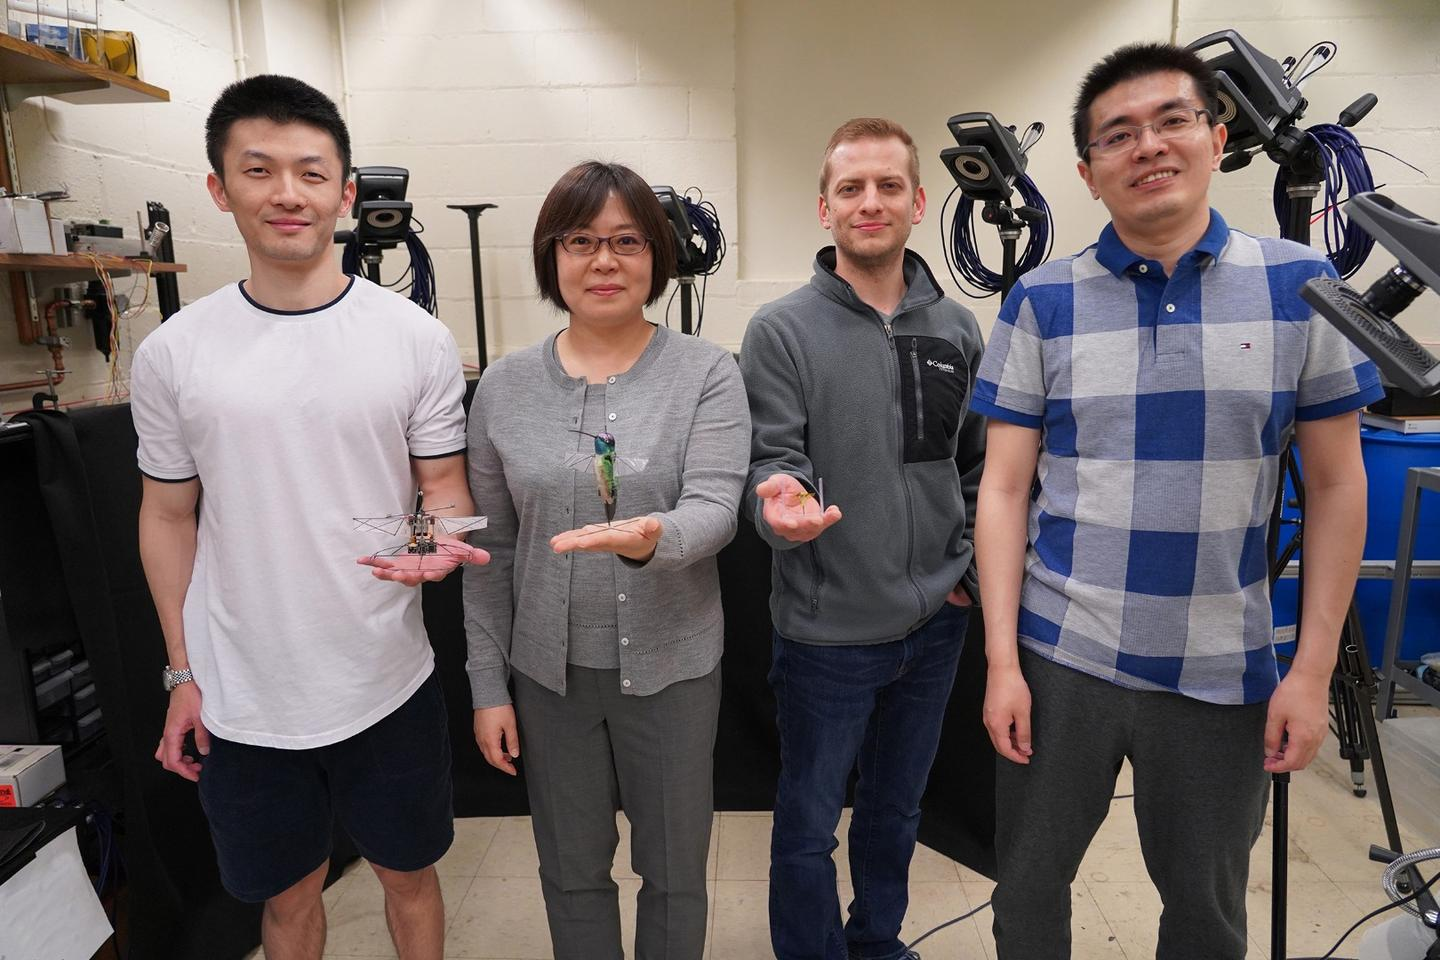 The researchers on the team (from left: Fan Fei, Xinyan Deng, Jesse Roll and Zhan Tu), with the robotic hummingbird and insects